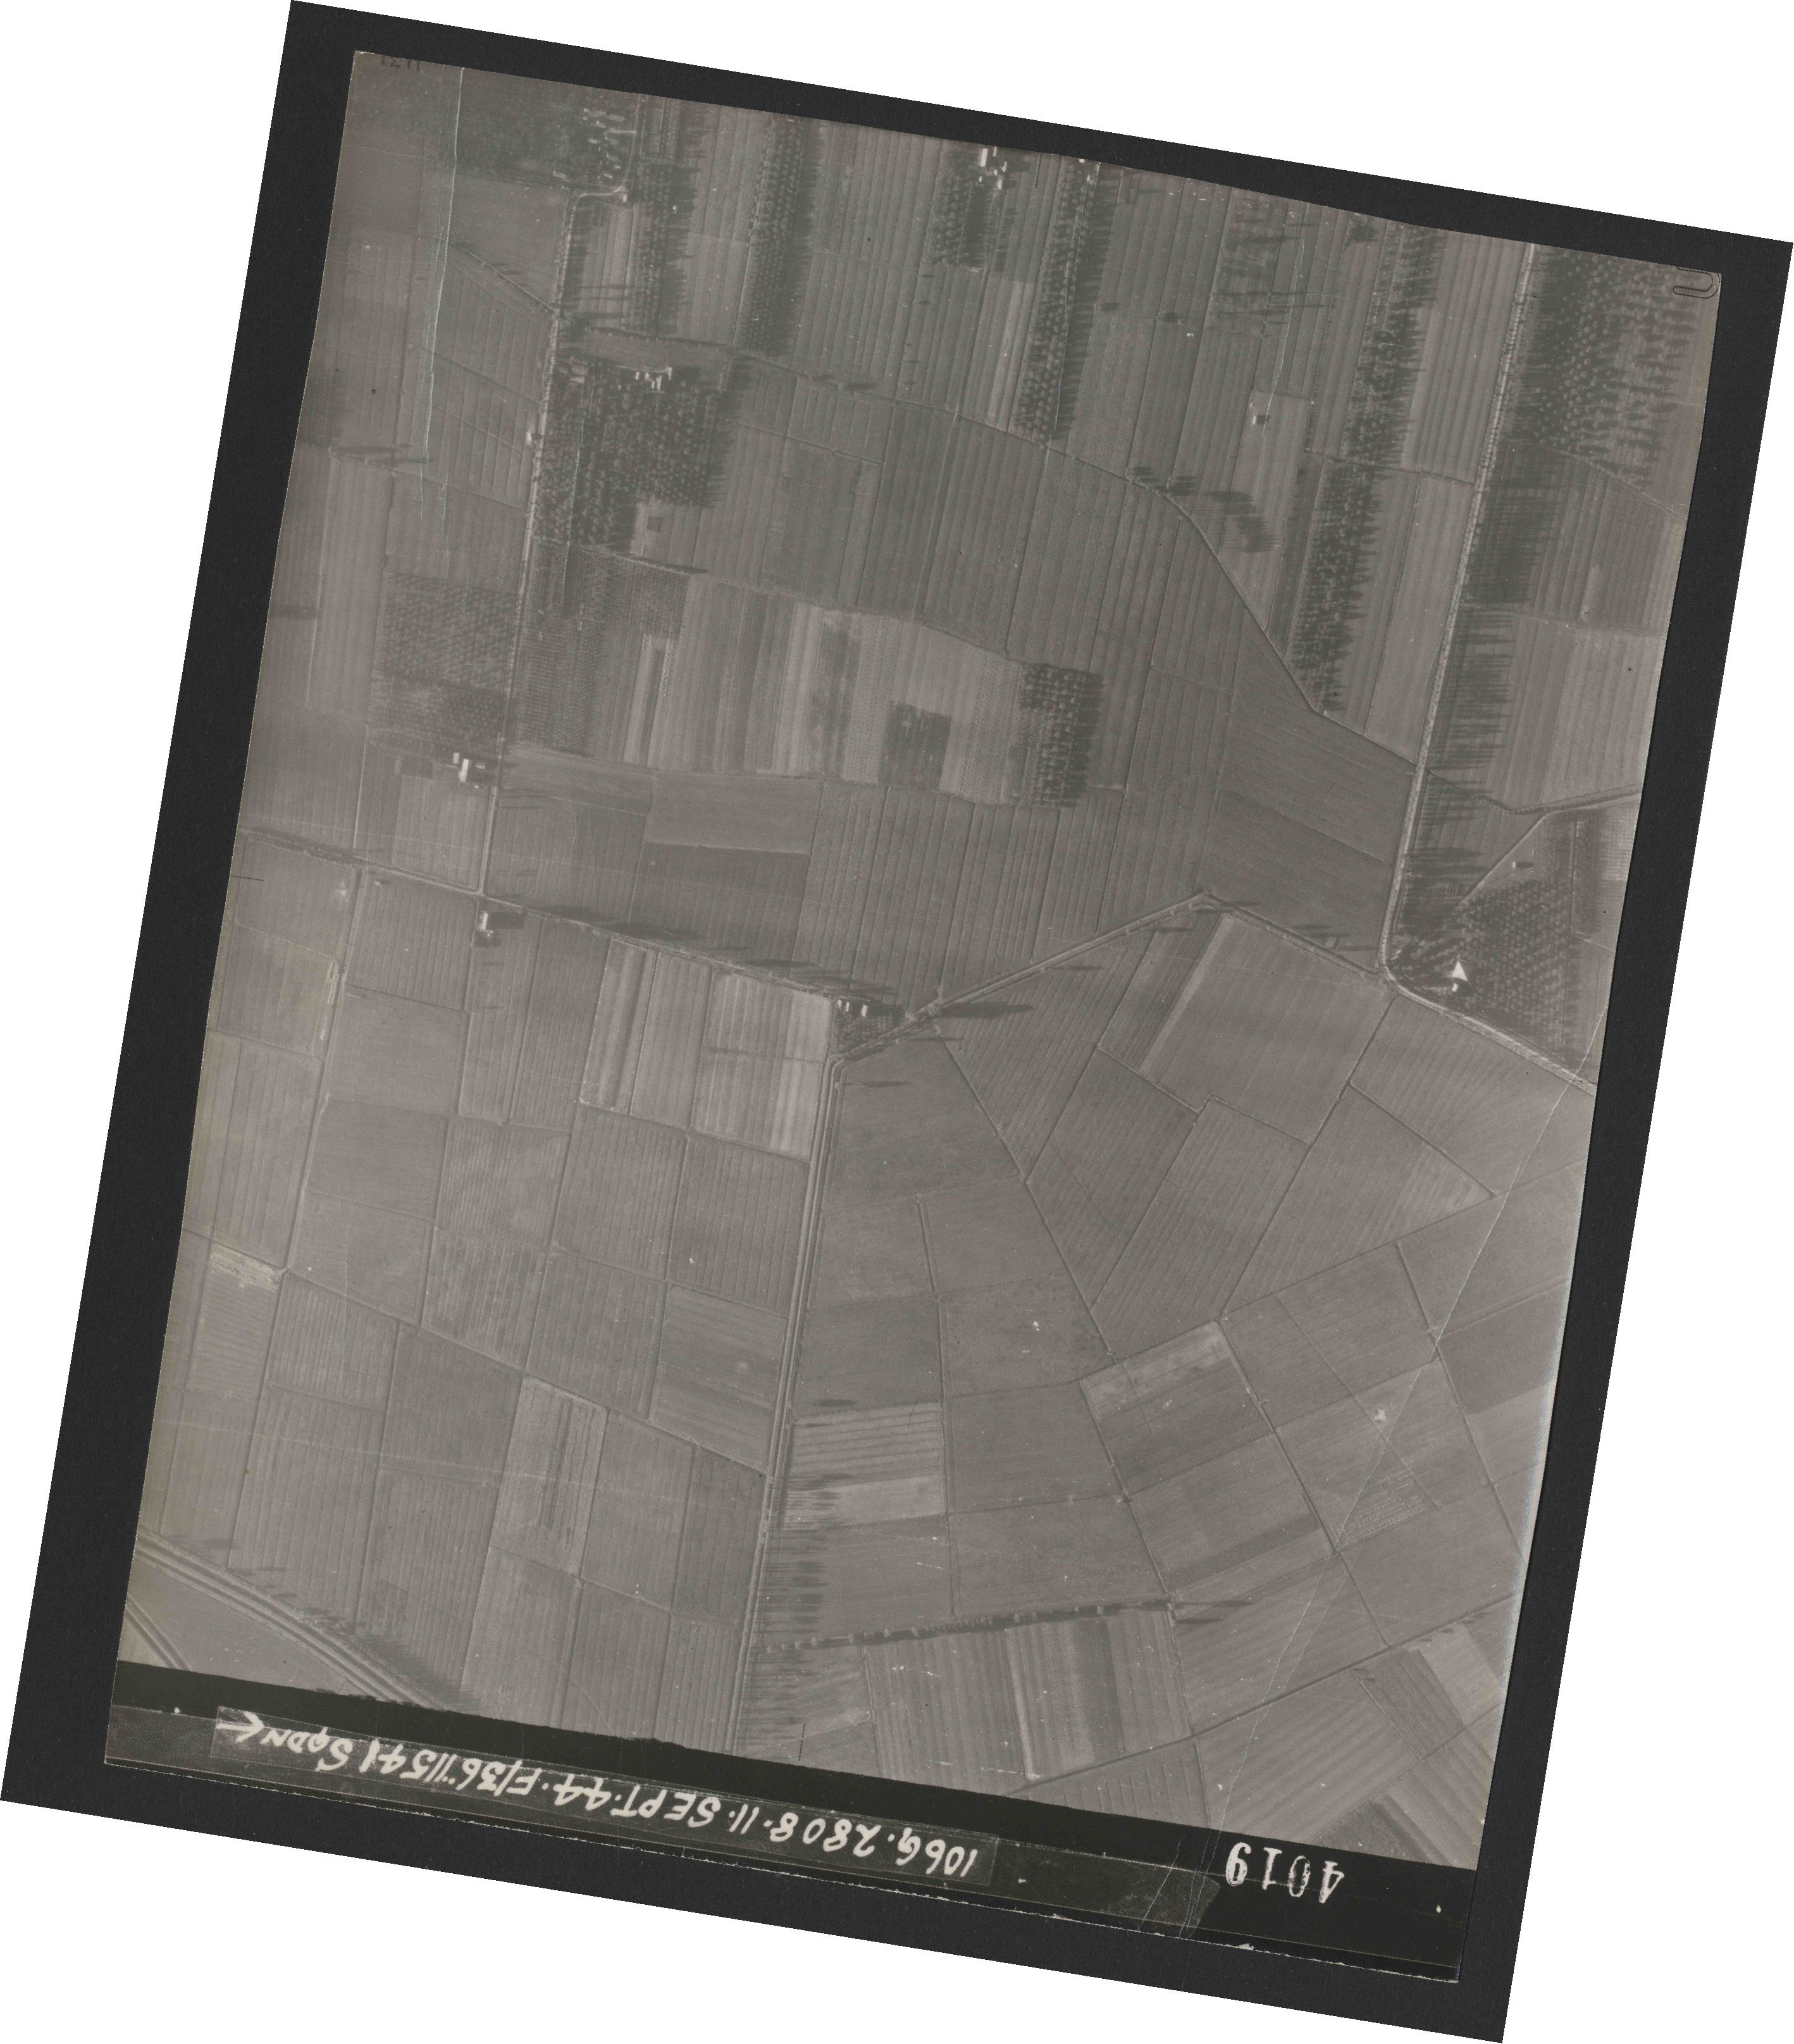 Collection RAF aerial photos 1940-1945 - flight 312, run 02, photo 4019